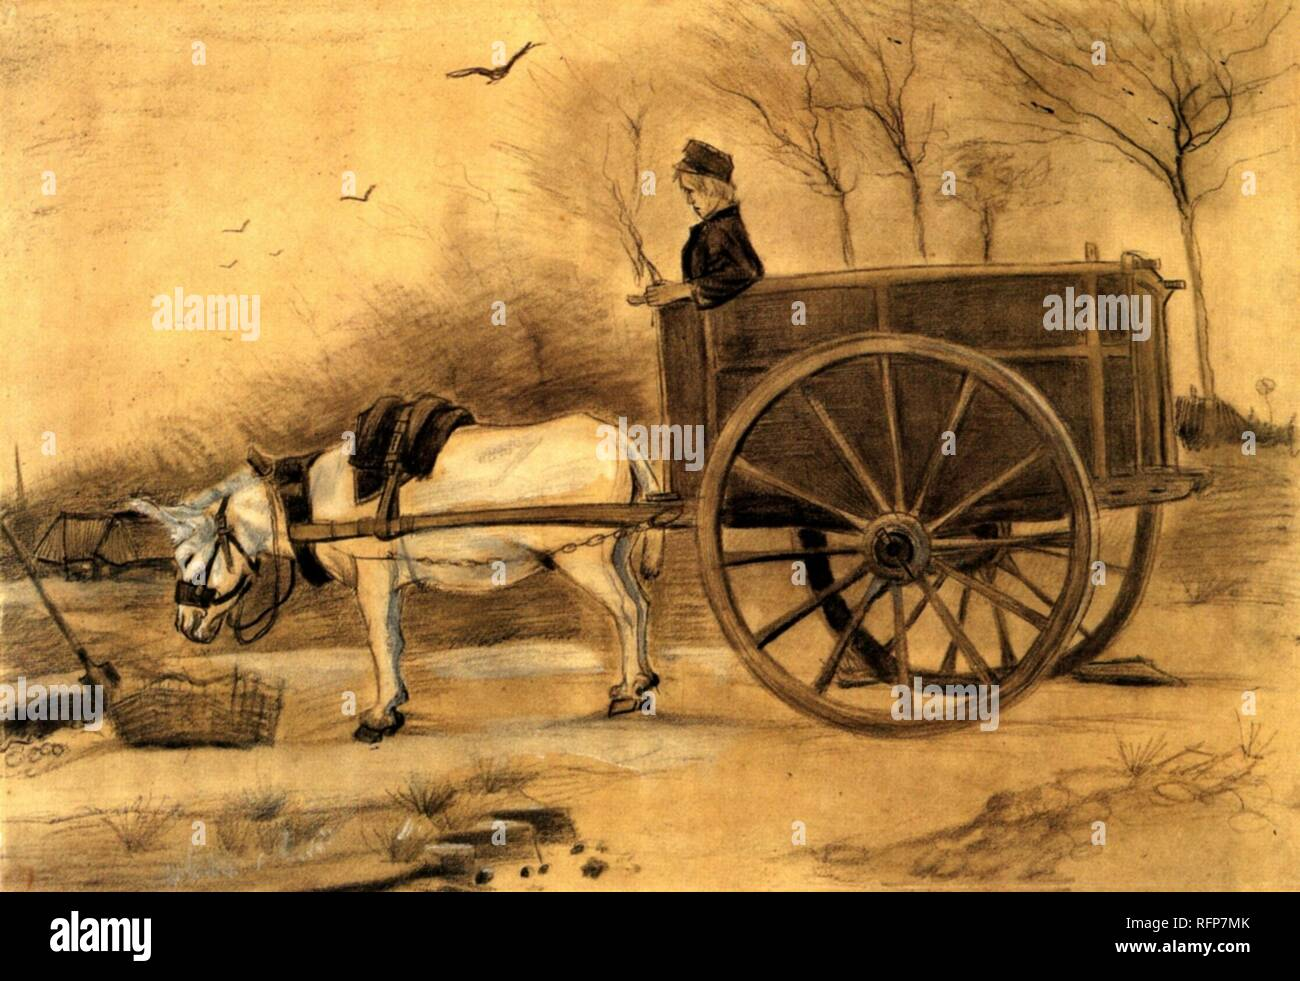 Vincent Van Gogh Drawings, Donkey and Cart.jpg - RFP7MK - Stock Image